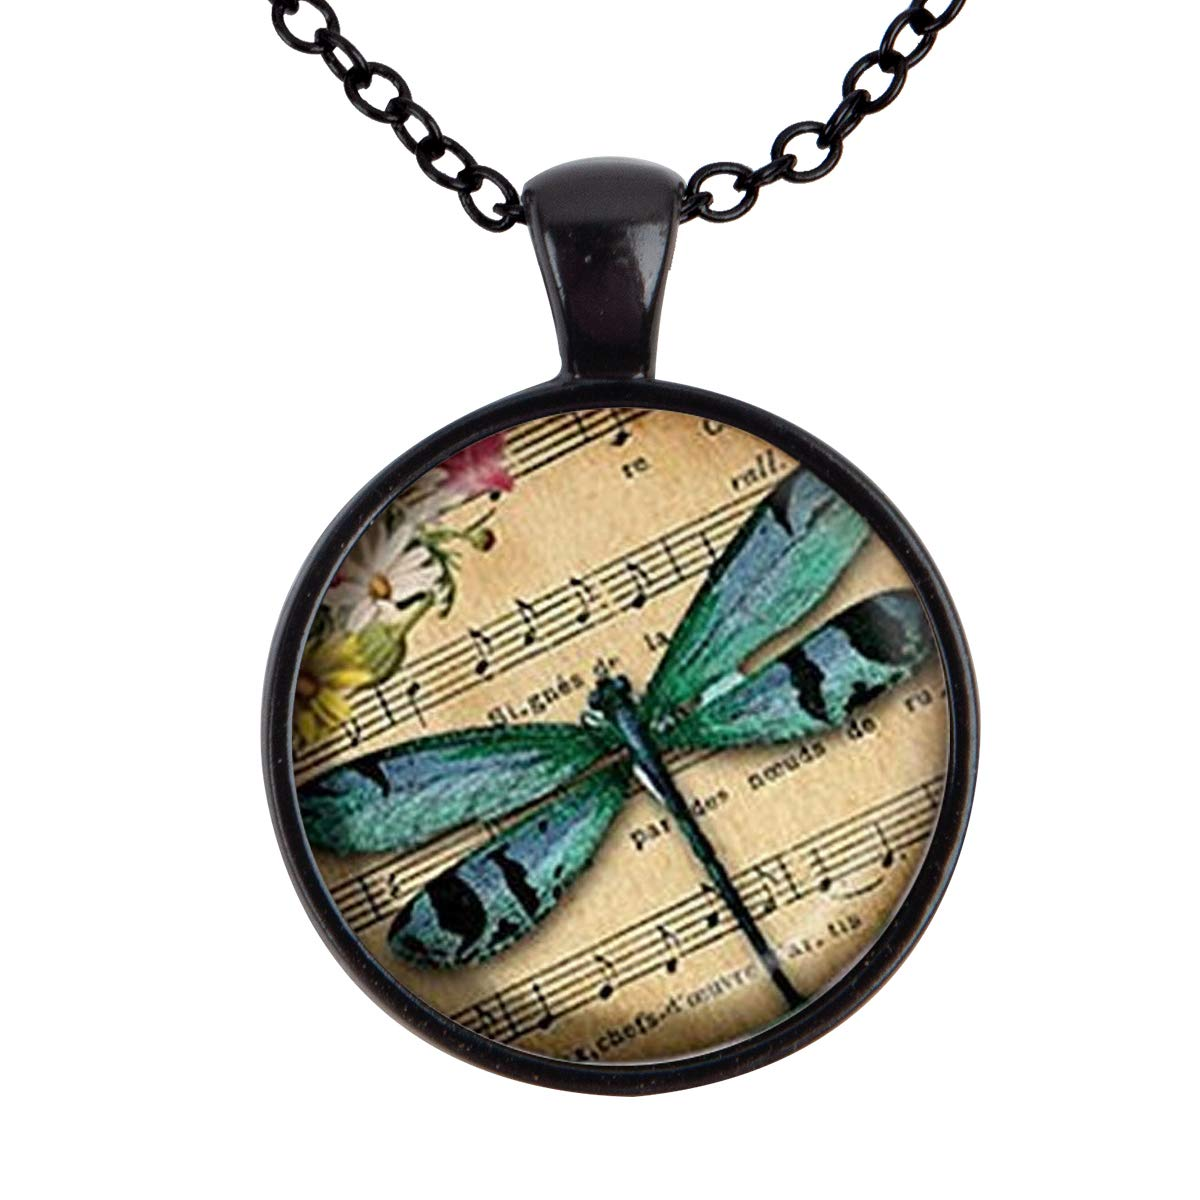 Lightrain Dragonfly Pendant Necklace Vintage Bronze Chain Statement Necklace Handmade Jewelry Gifts